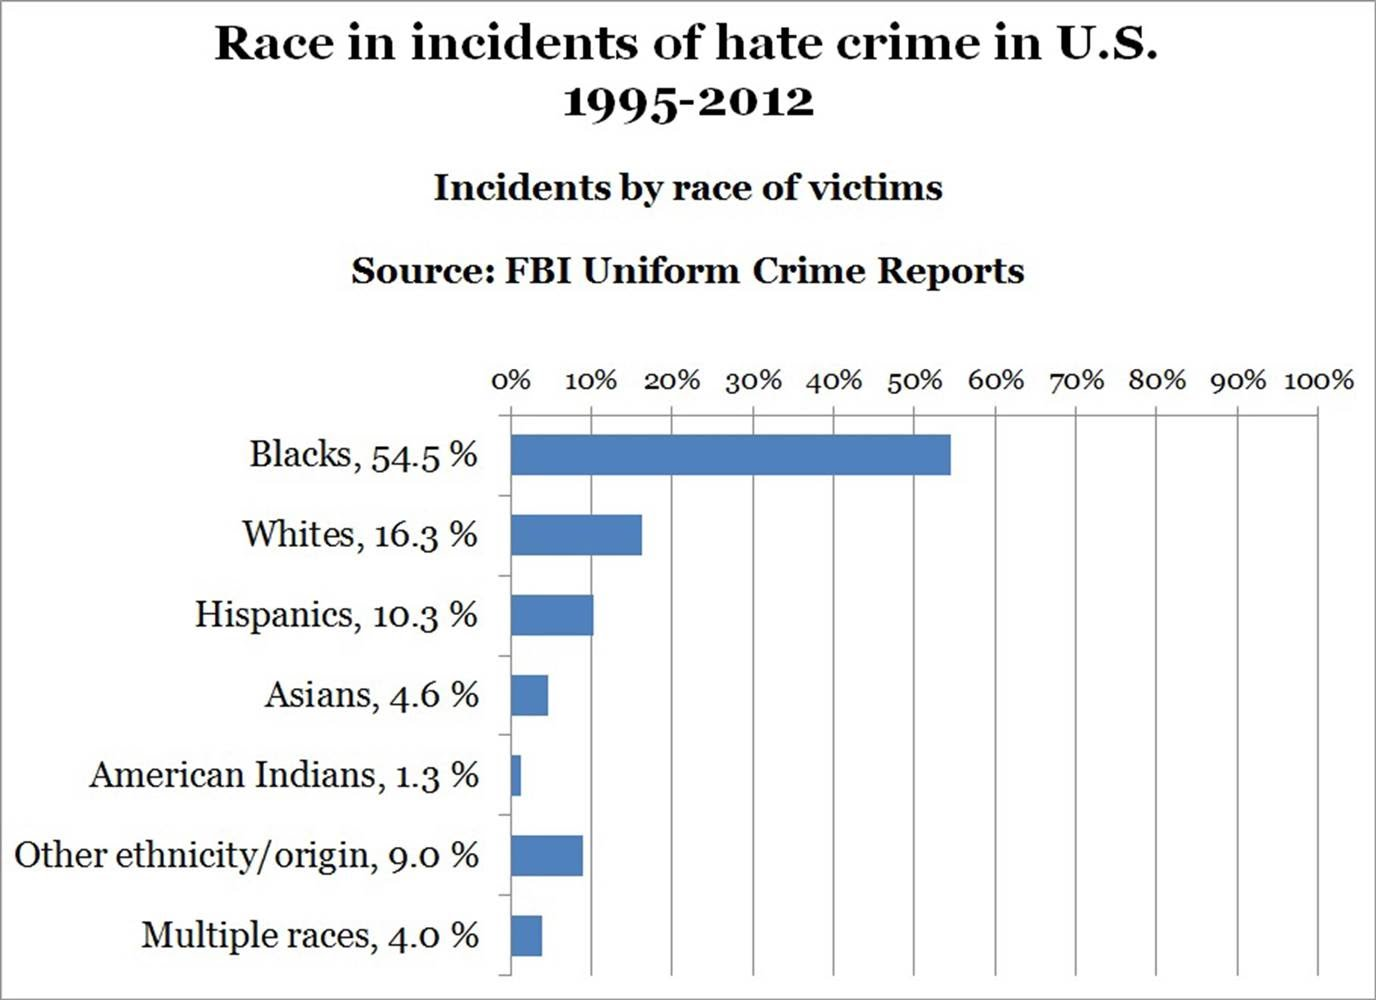 https://cdn.discordapp.com/attachments/454978255225749524/469093803064557579/140415-hate-crimes-by-race-2259_8f2eb71bfa345ac0669fad850cfd4b8d.nbcnews-ux-2880-1000.jpg